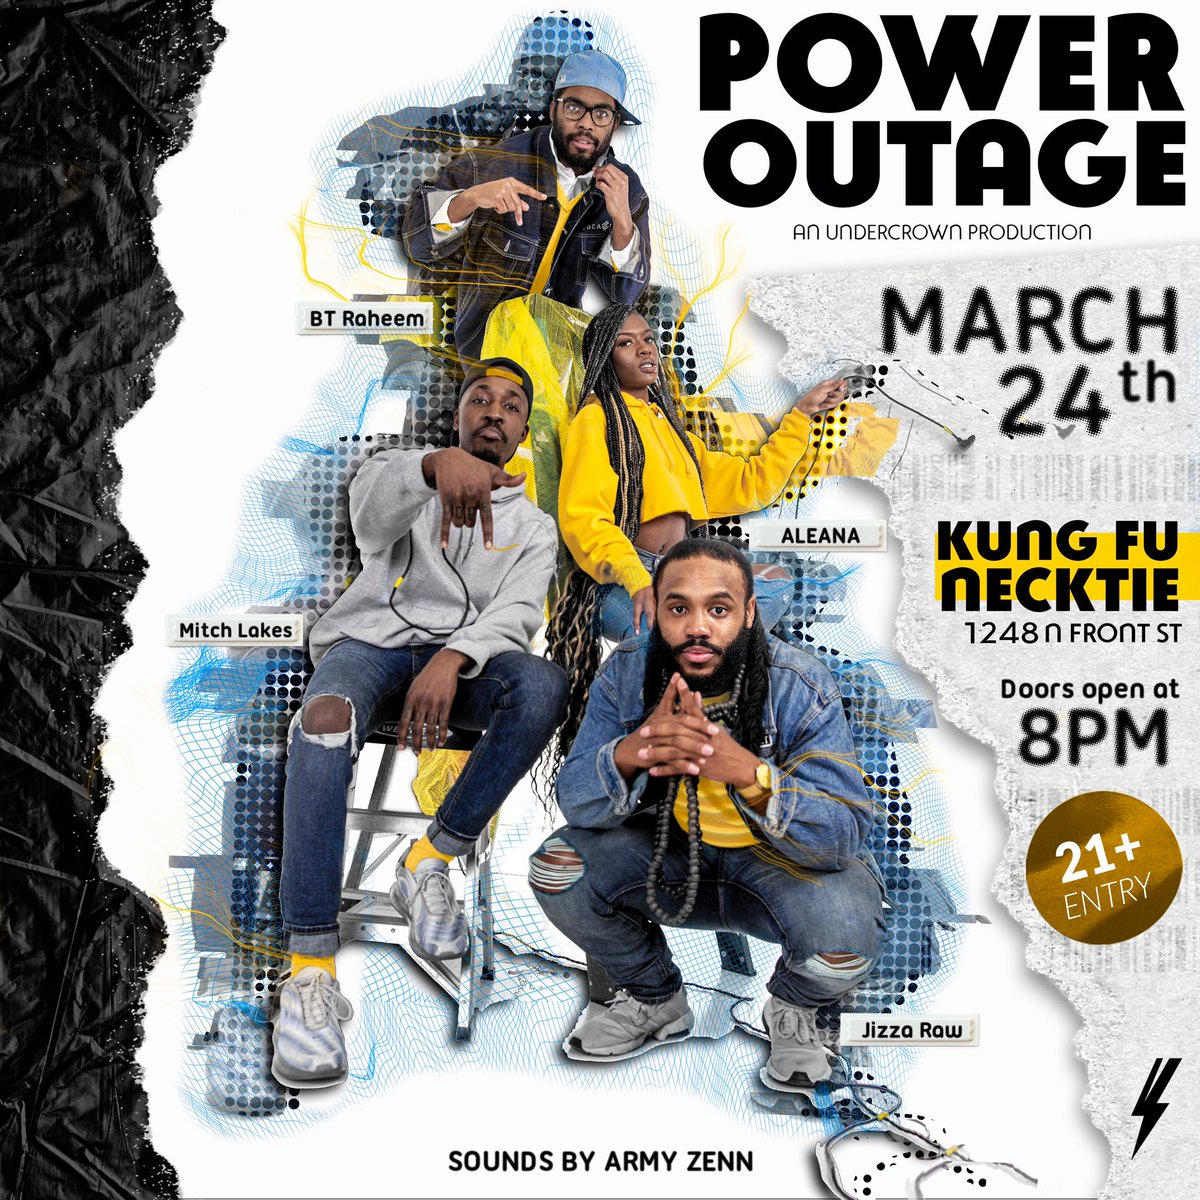 #POWEROUTAGE   Proud to announce I will be a part of @weareundercrown's first show production along w some amazing artists underground ⚡️⚡️⚡️  Live performances by @aleanaop @mitchlakes @jizzaraw and @BT22_  tix avail via @weareundercrown  https://poweroutagekfn.eventbrite.com/